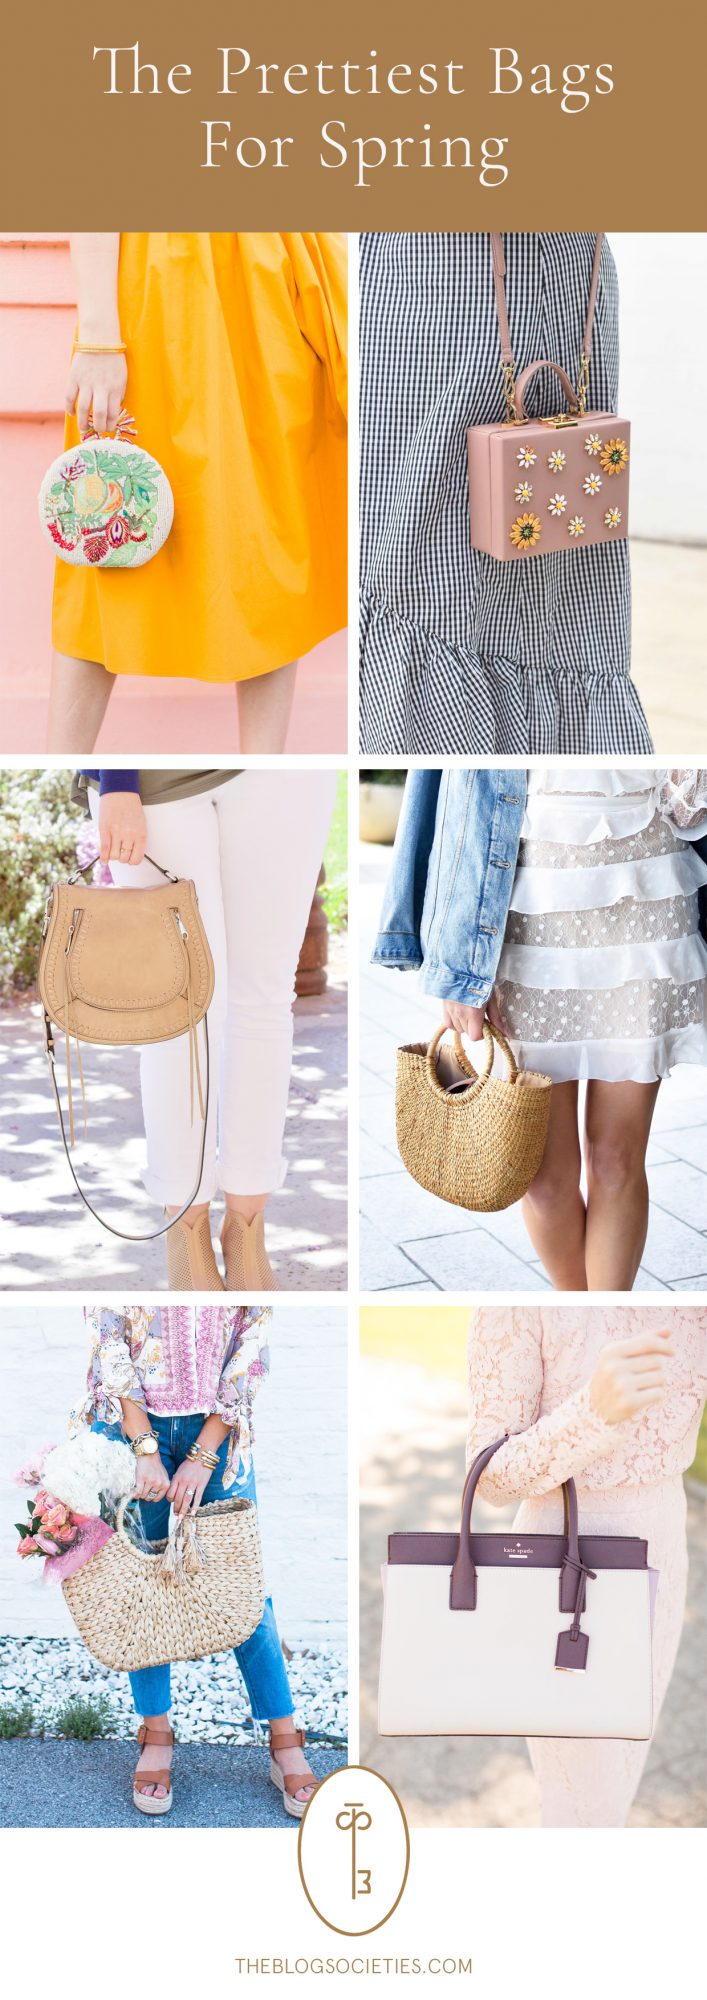 The Prettiest Bags For Spring - The Blog Societies